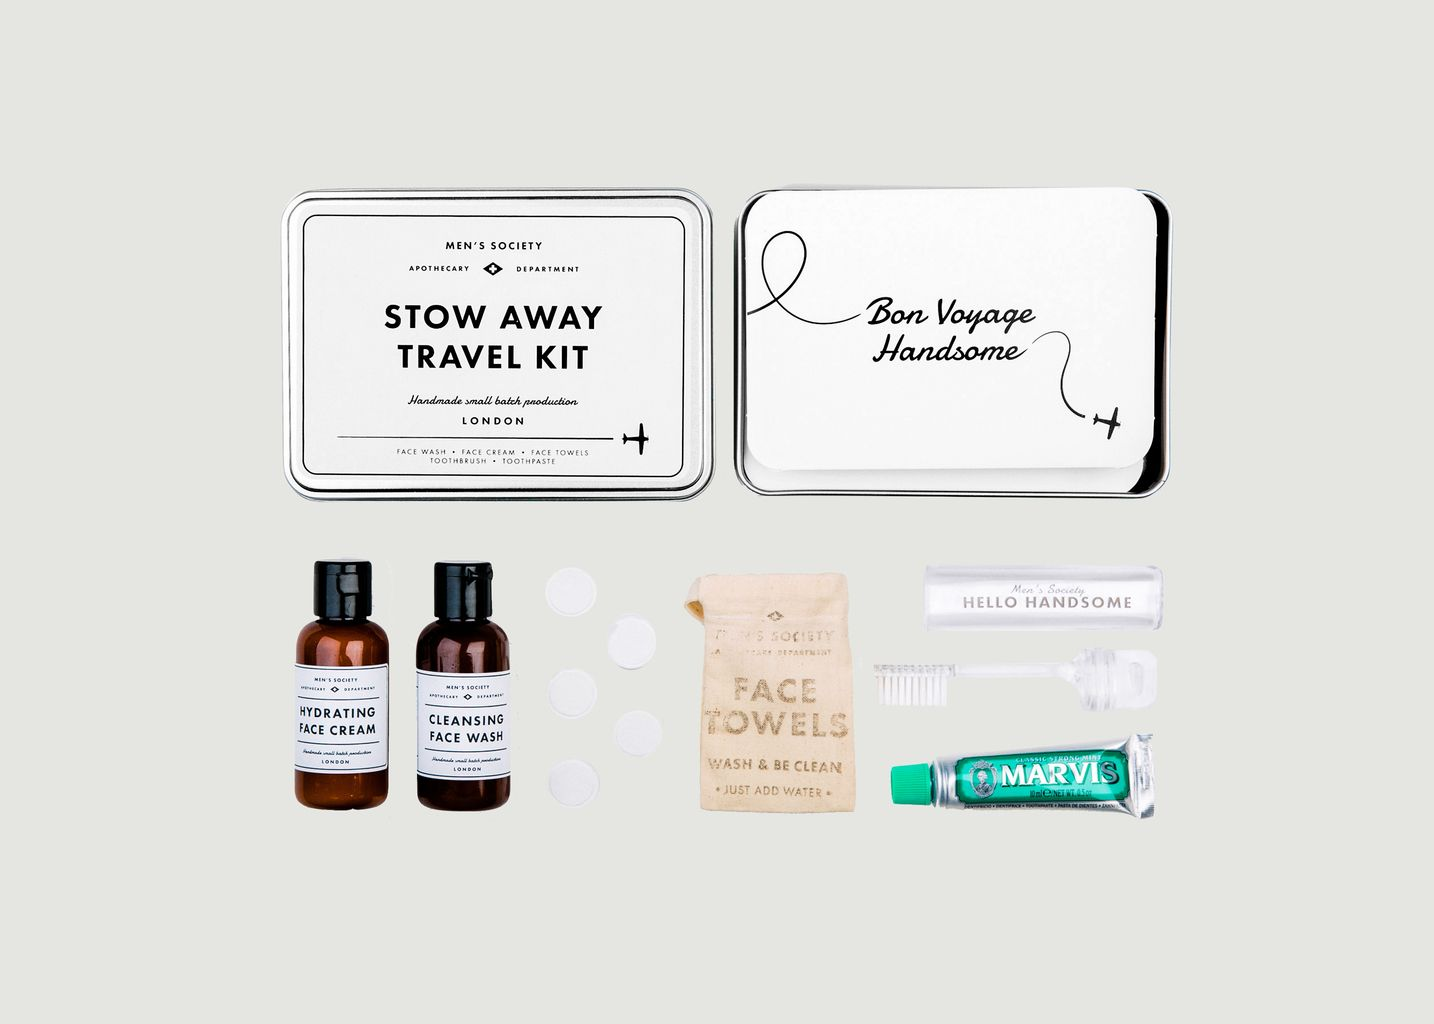 Kit de Voyage - Men's Society